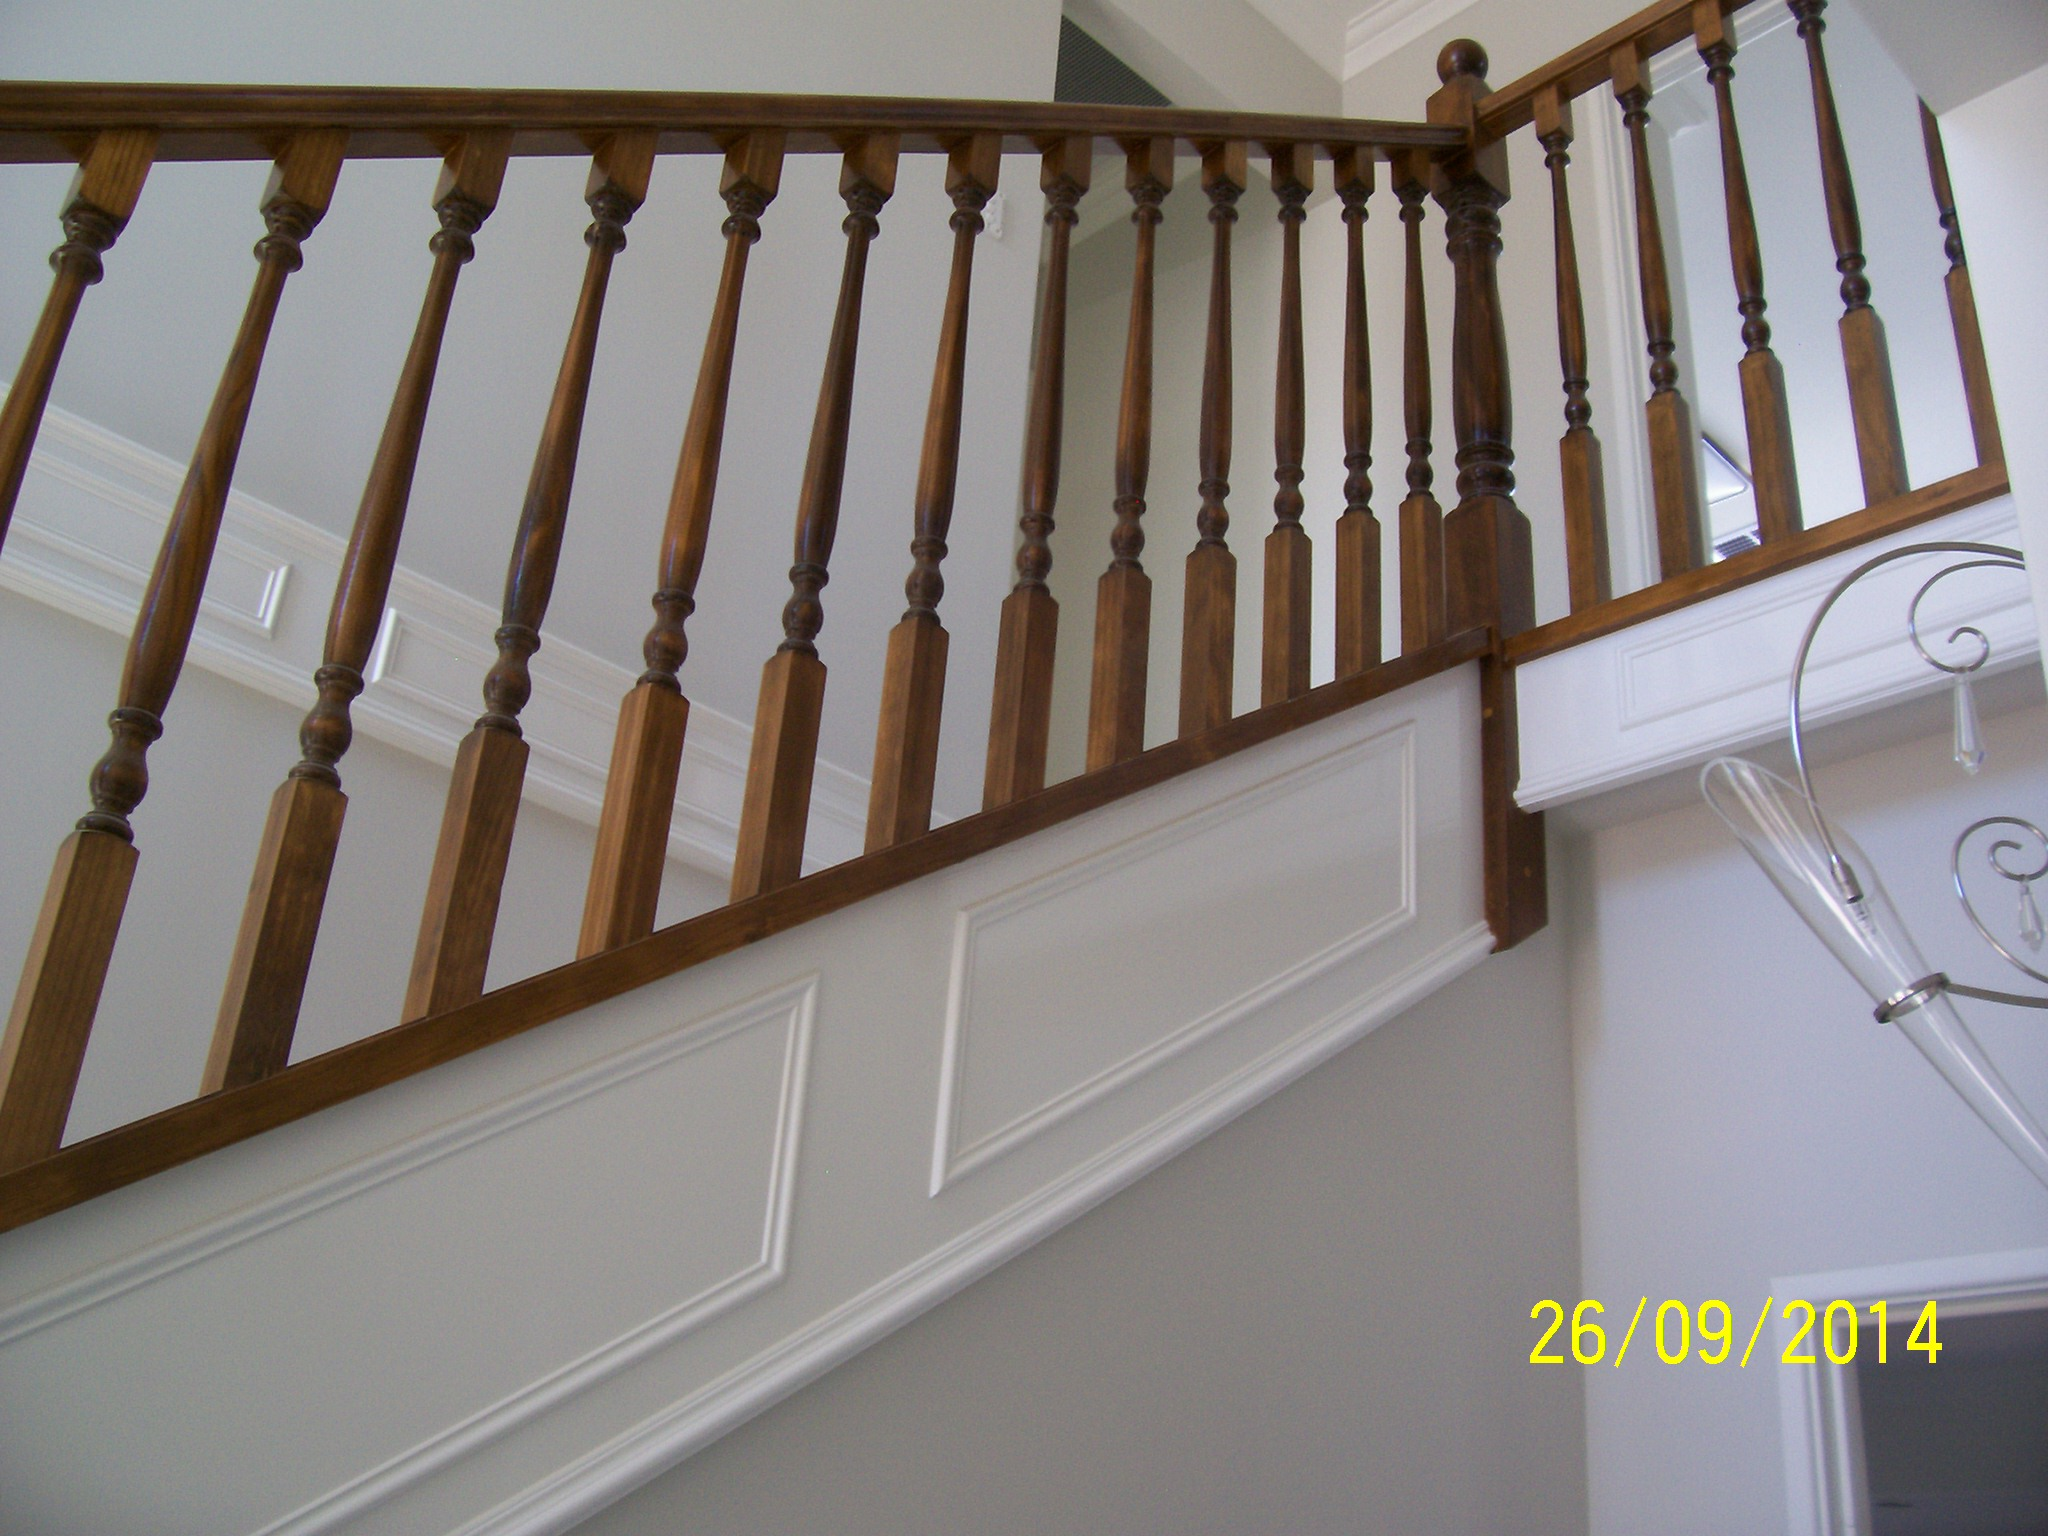 36 - Timber staircase on cement.JPG